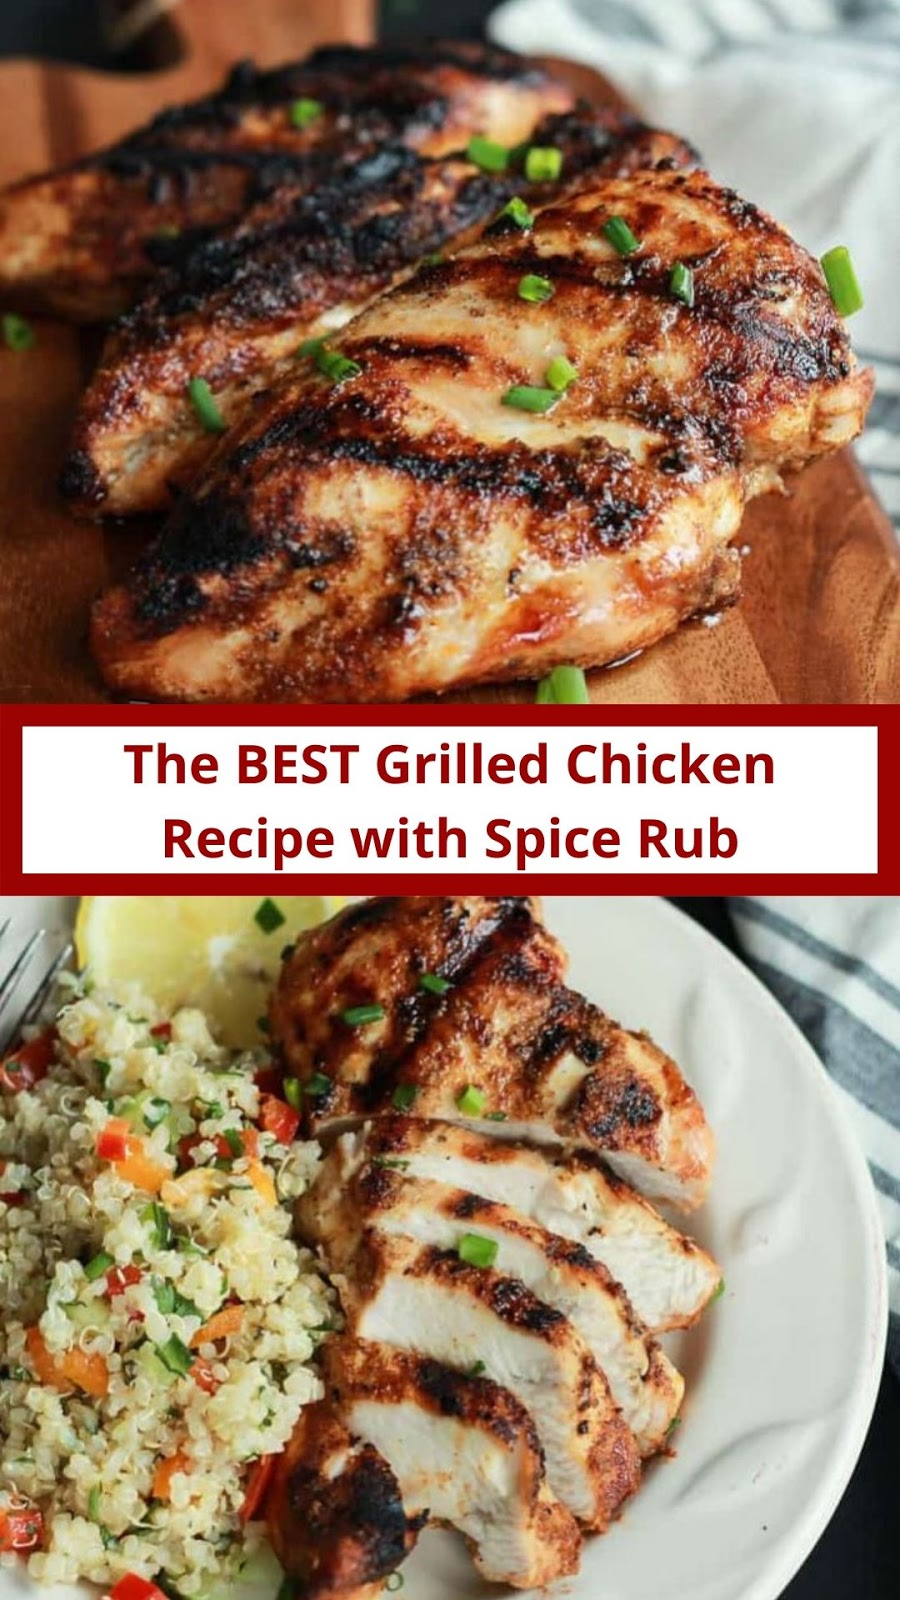 Easy Grilled Chicken Breast Recipe + Homemade Spice Rub